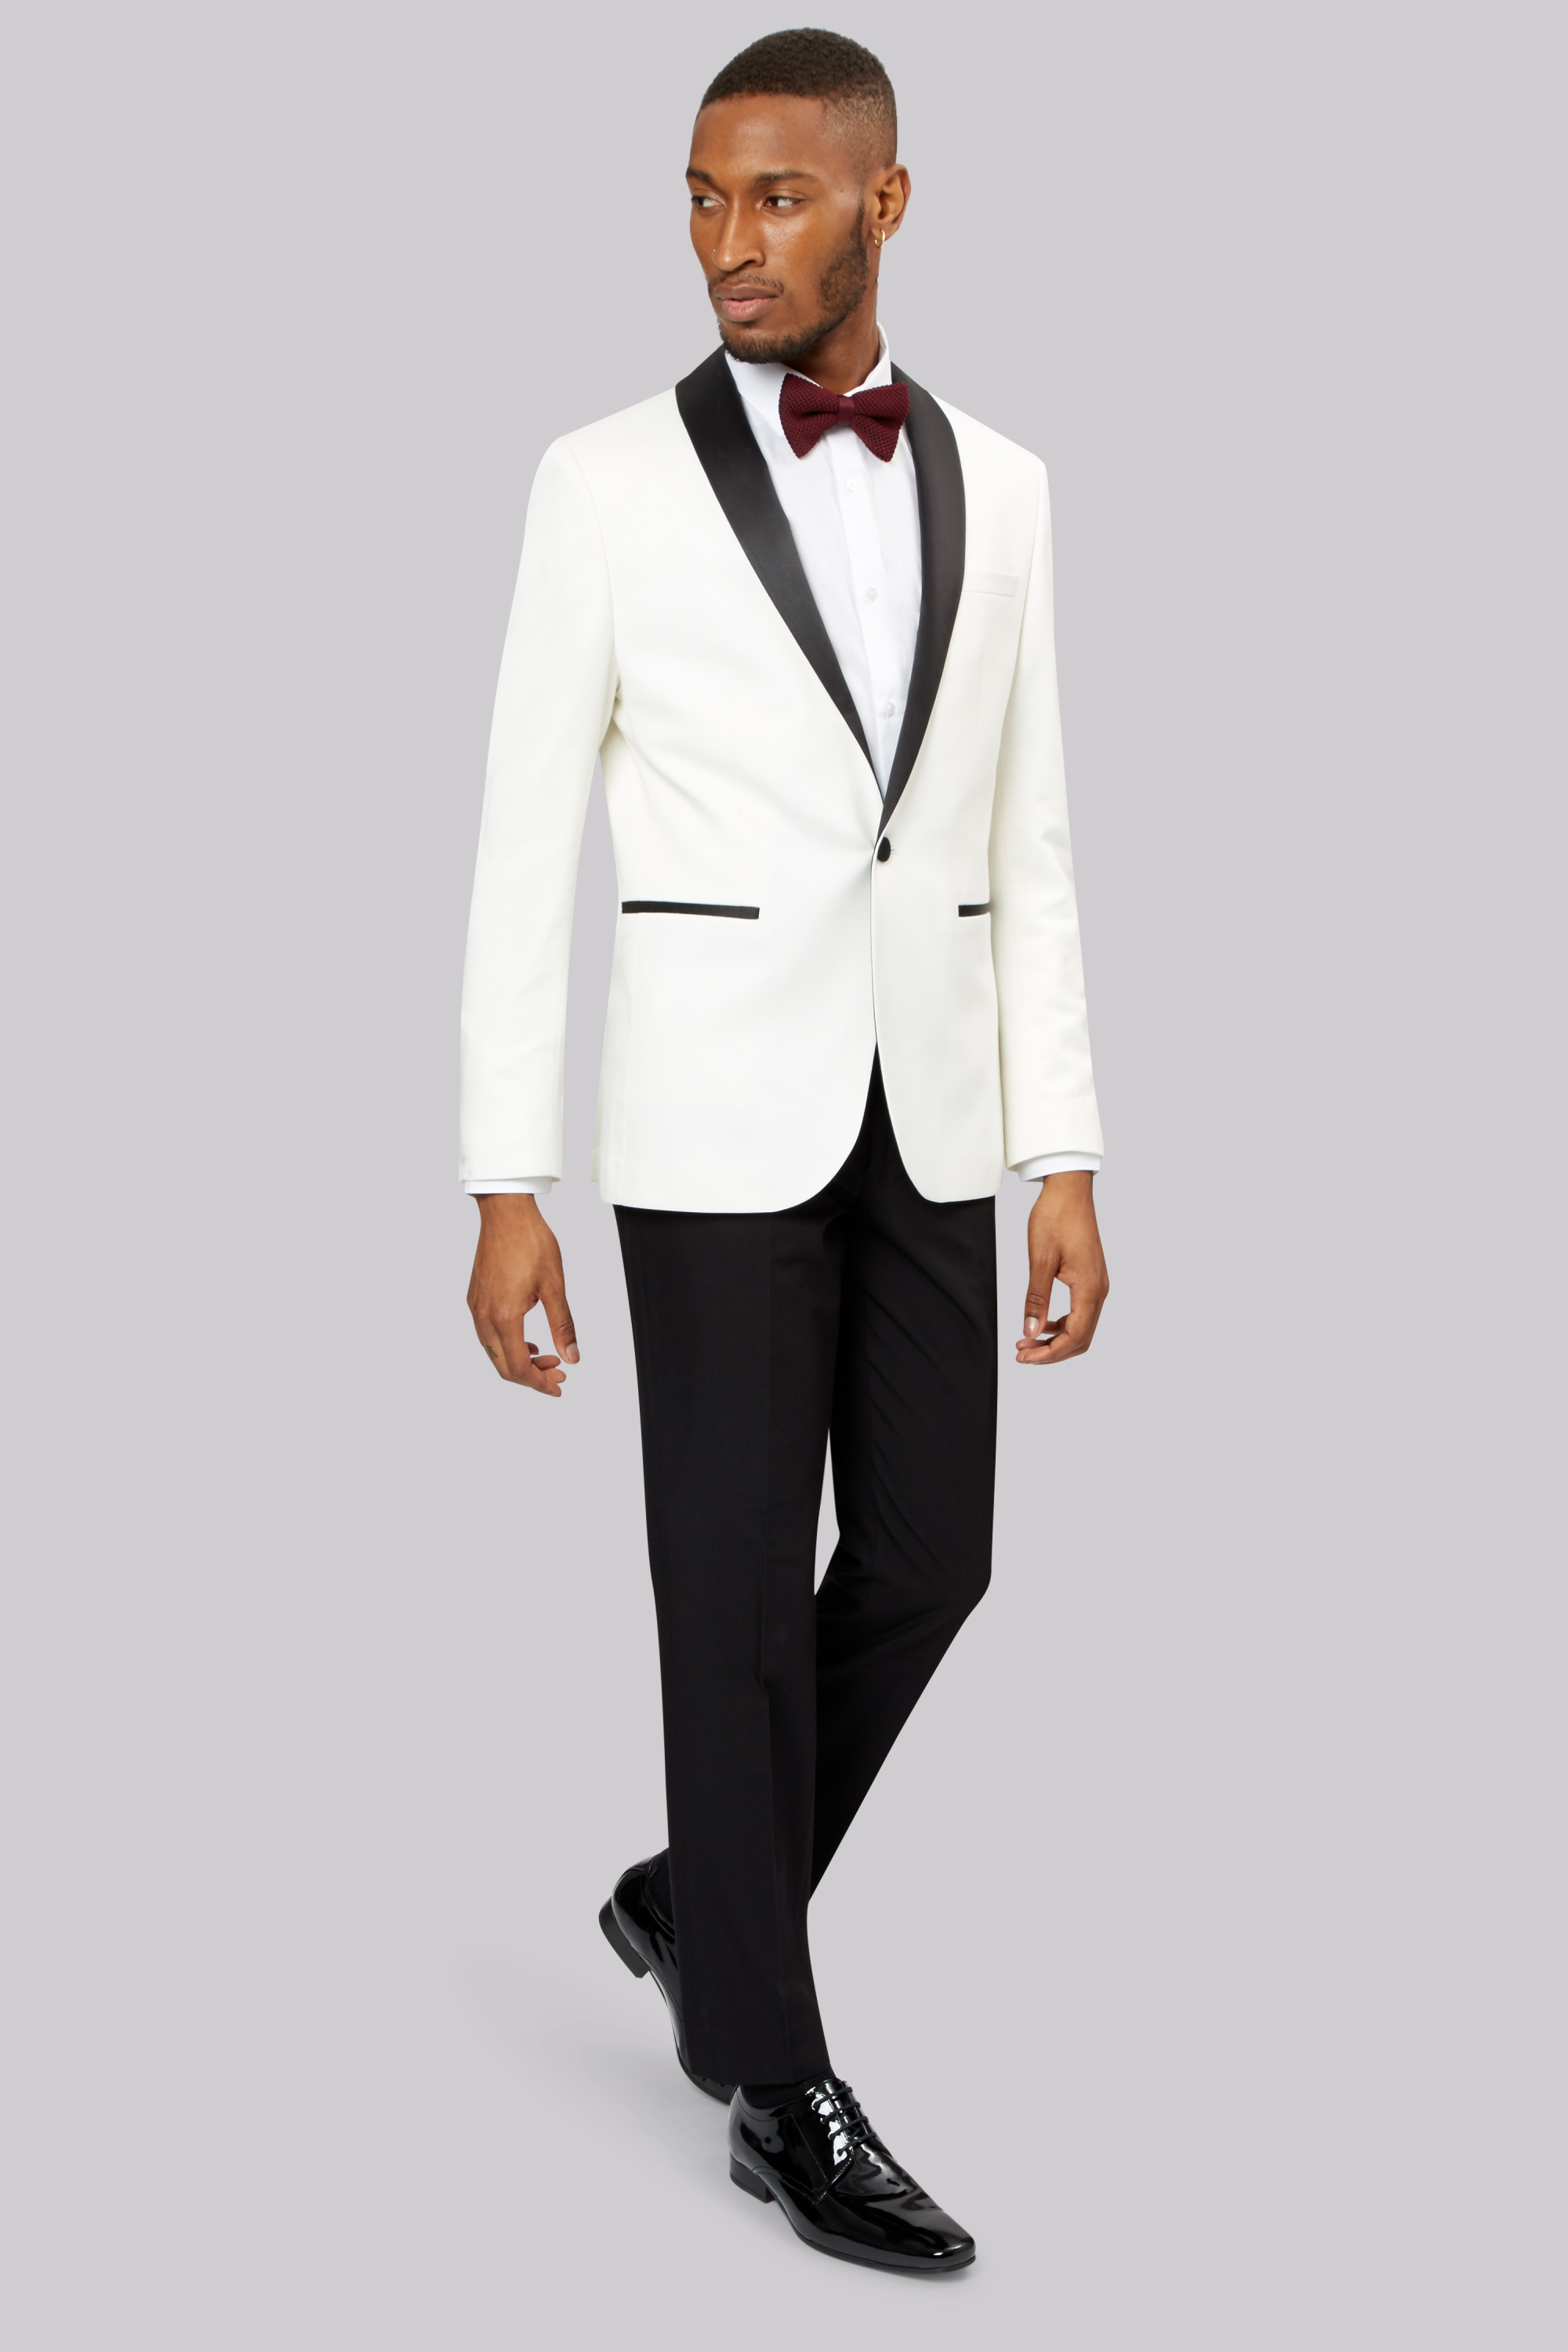 sku#mrs ts mens solid color white 2 button wool feel 2pc suit by:fitted slim fitc cut paul super 's extra fine $ SKU#LW Casual Shortsleeves $